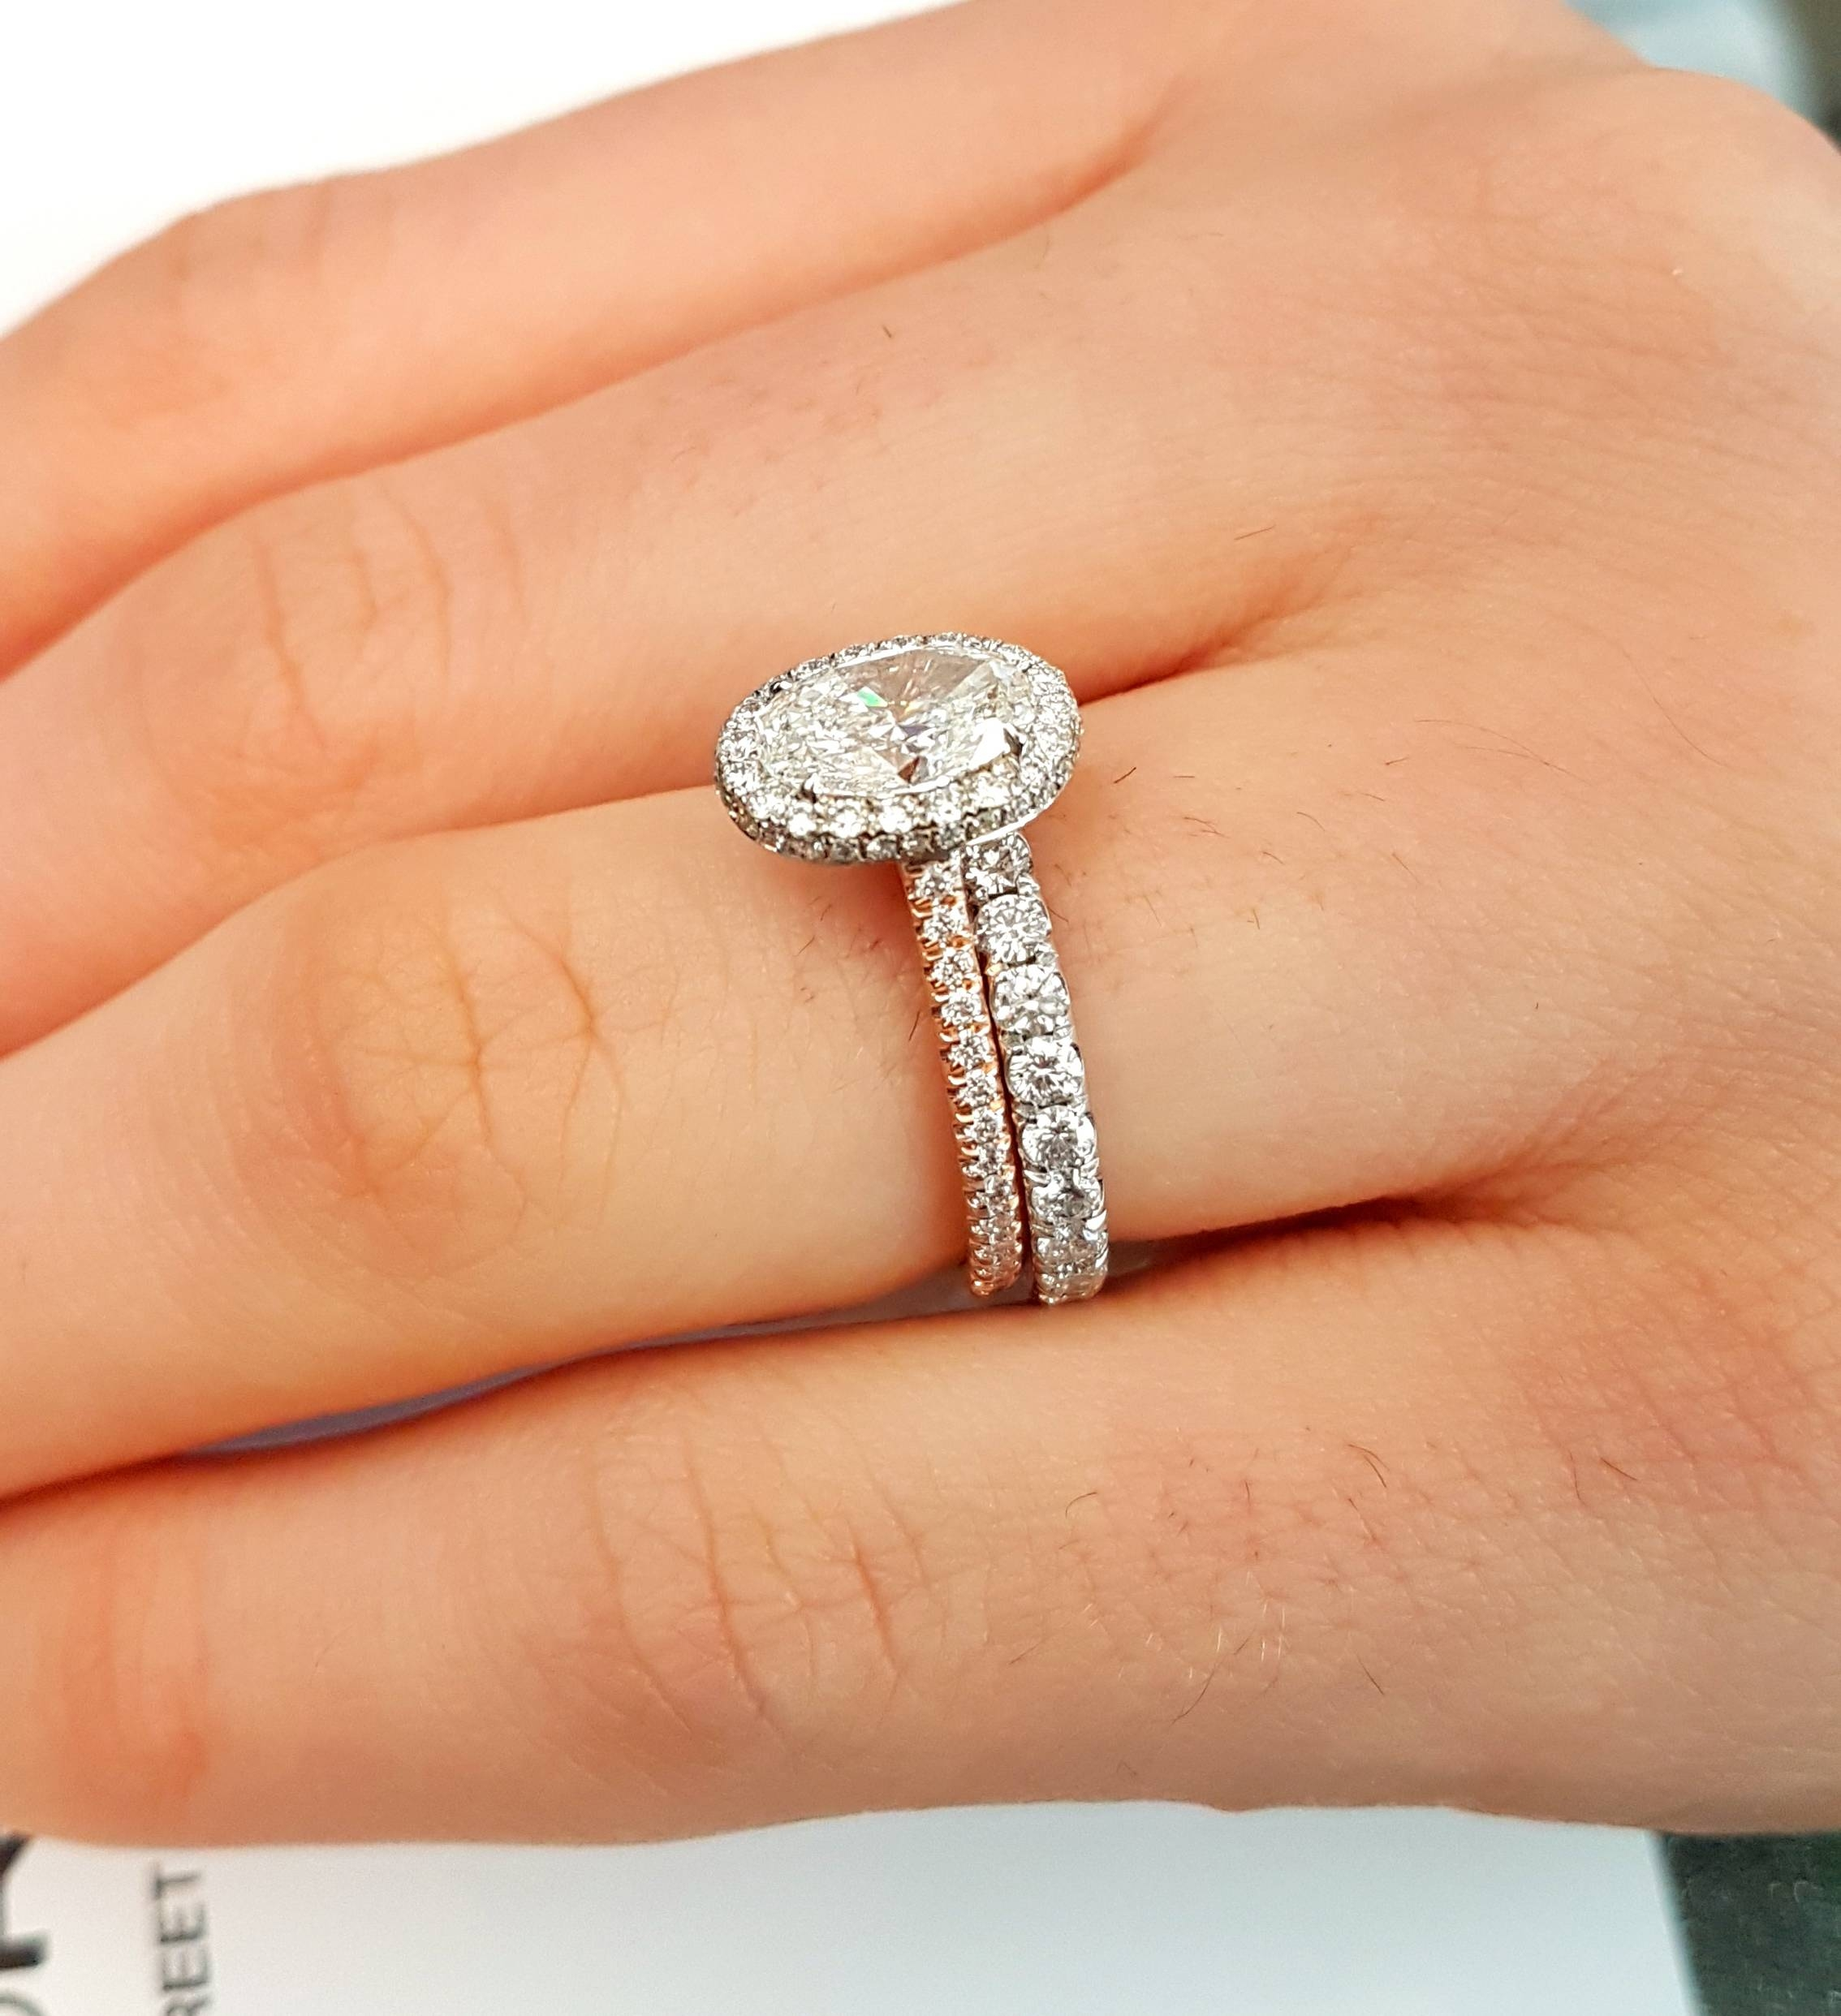 Mixing And Matching Wedding Bands | Jewelry Blog | Engagement Pertaining To Newest Solitaire Engagement Rings With Wedding Bands (Gallery 12 of 15)